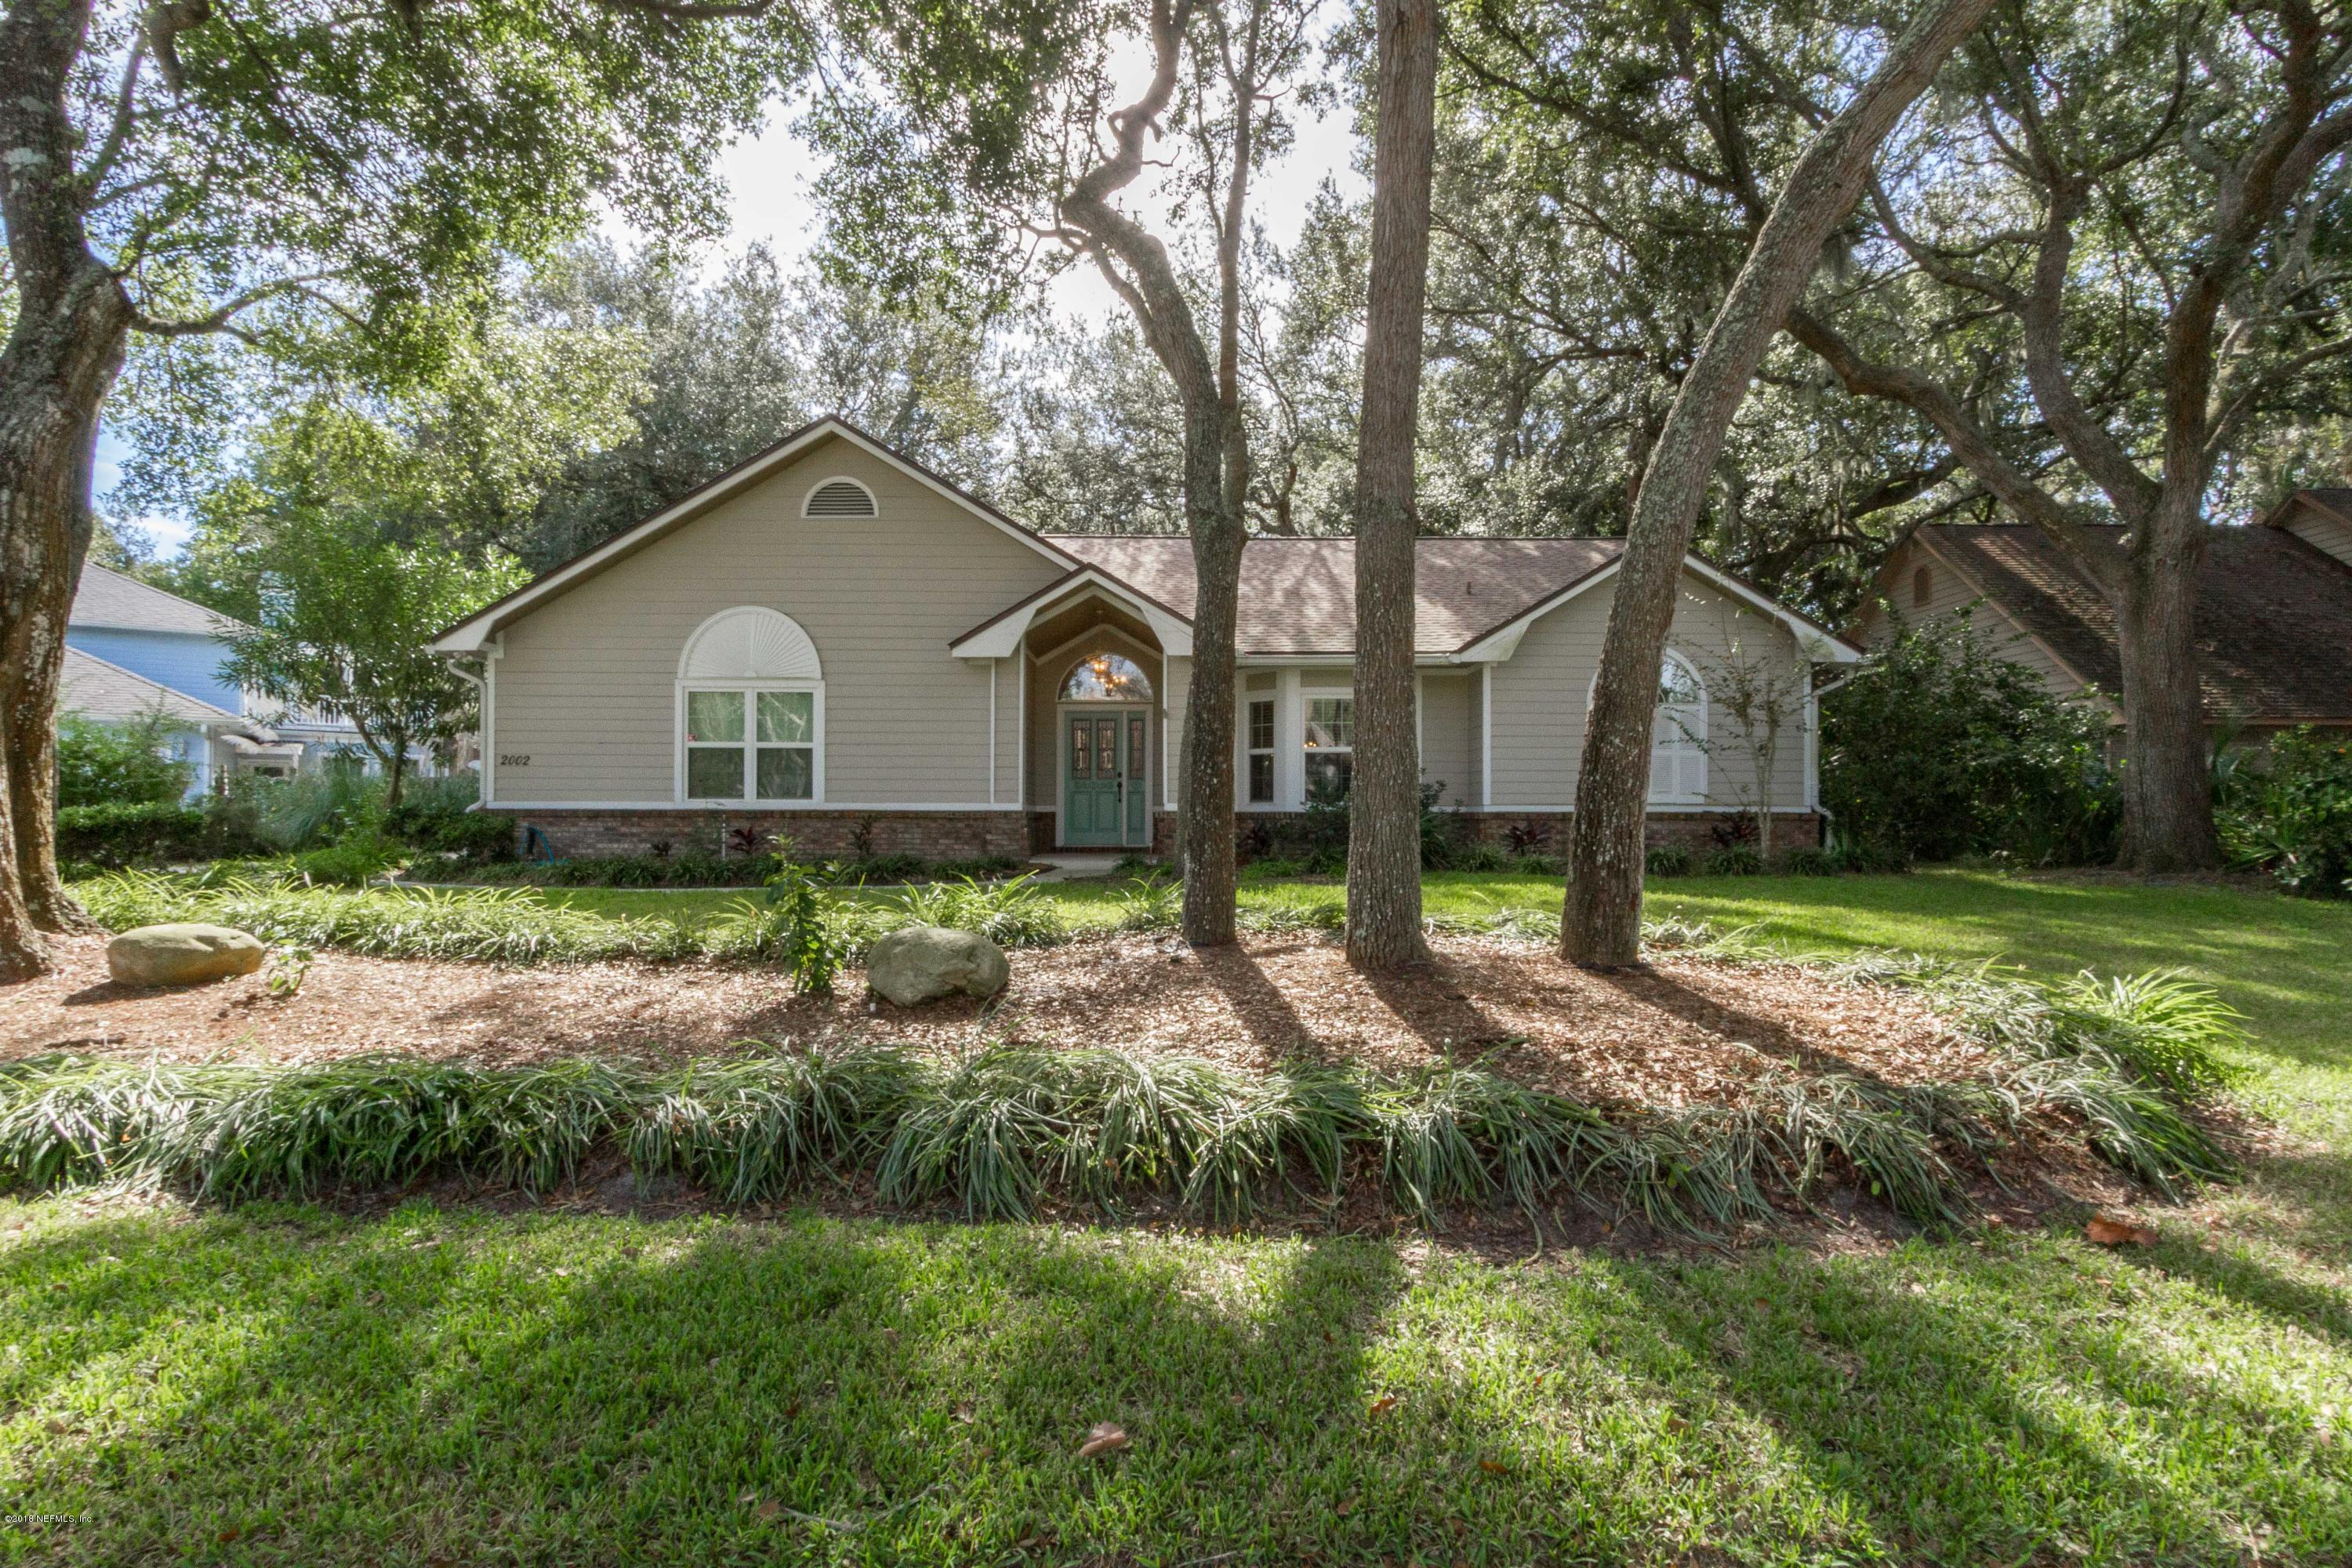 2002 MARYE BRANT, NEPTUNE BEACH, FLORIDA 32266, 4 Bedrooms Bedrooms, ,2 BathroomsBathrooms,Residential - single family,For sale,MARYE BRANT,994844